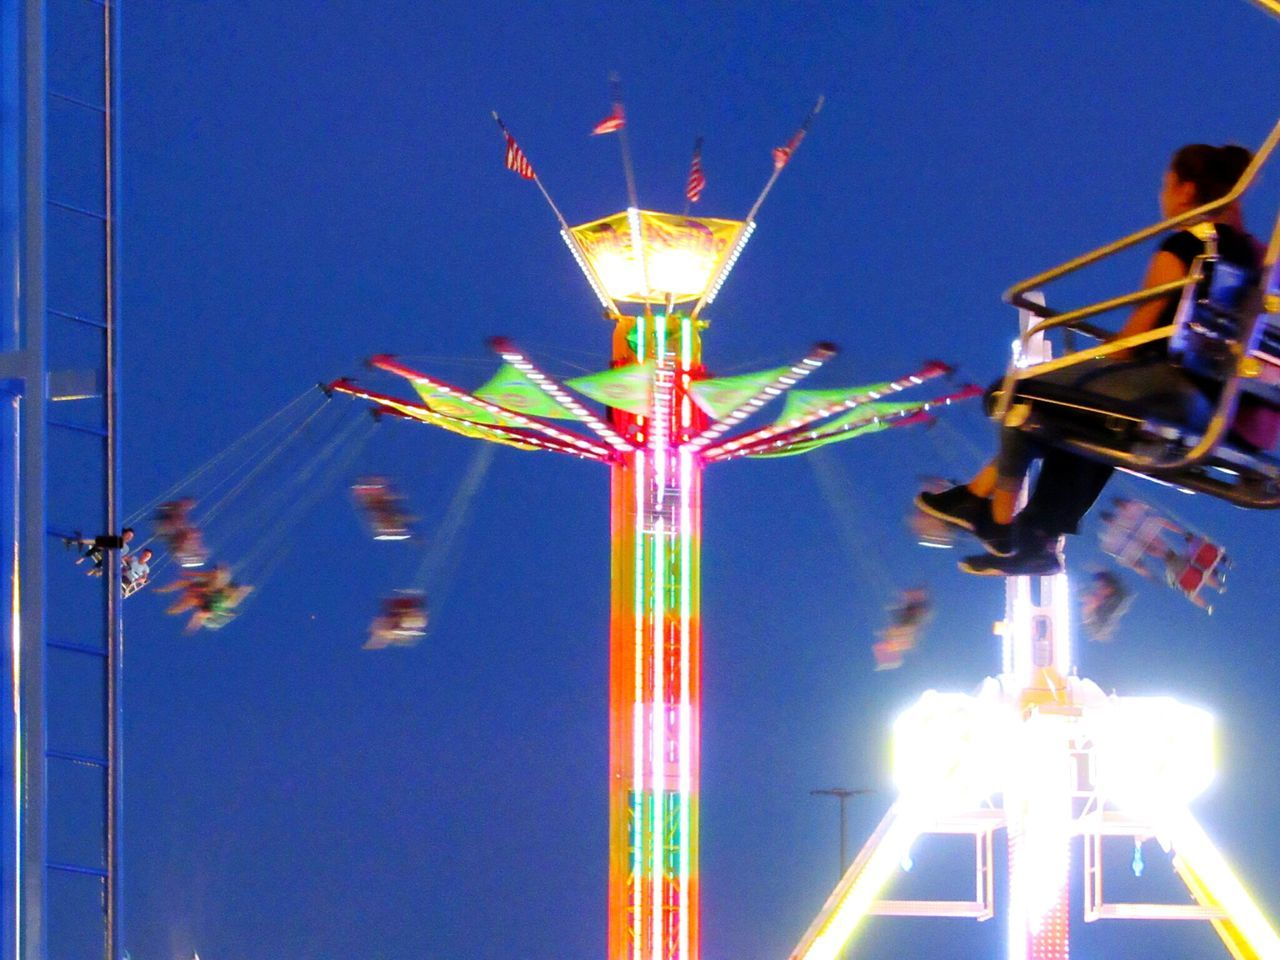 arts culture and entertainment, amusement park, low angle view, illuminated, amusement park ride, night, motion, clear sky, outdoors, blue, no people, multi colored, sky, carousel